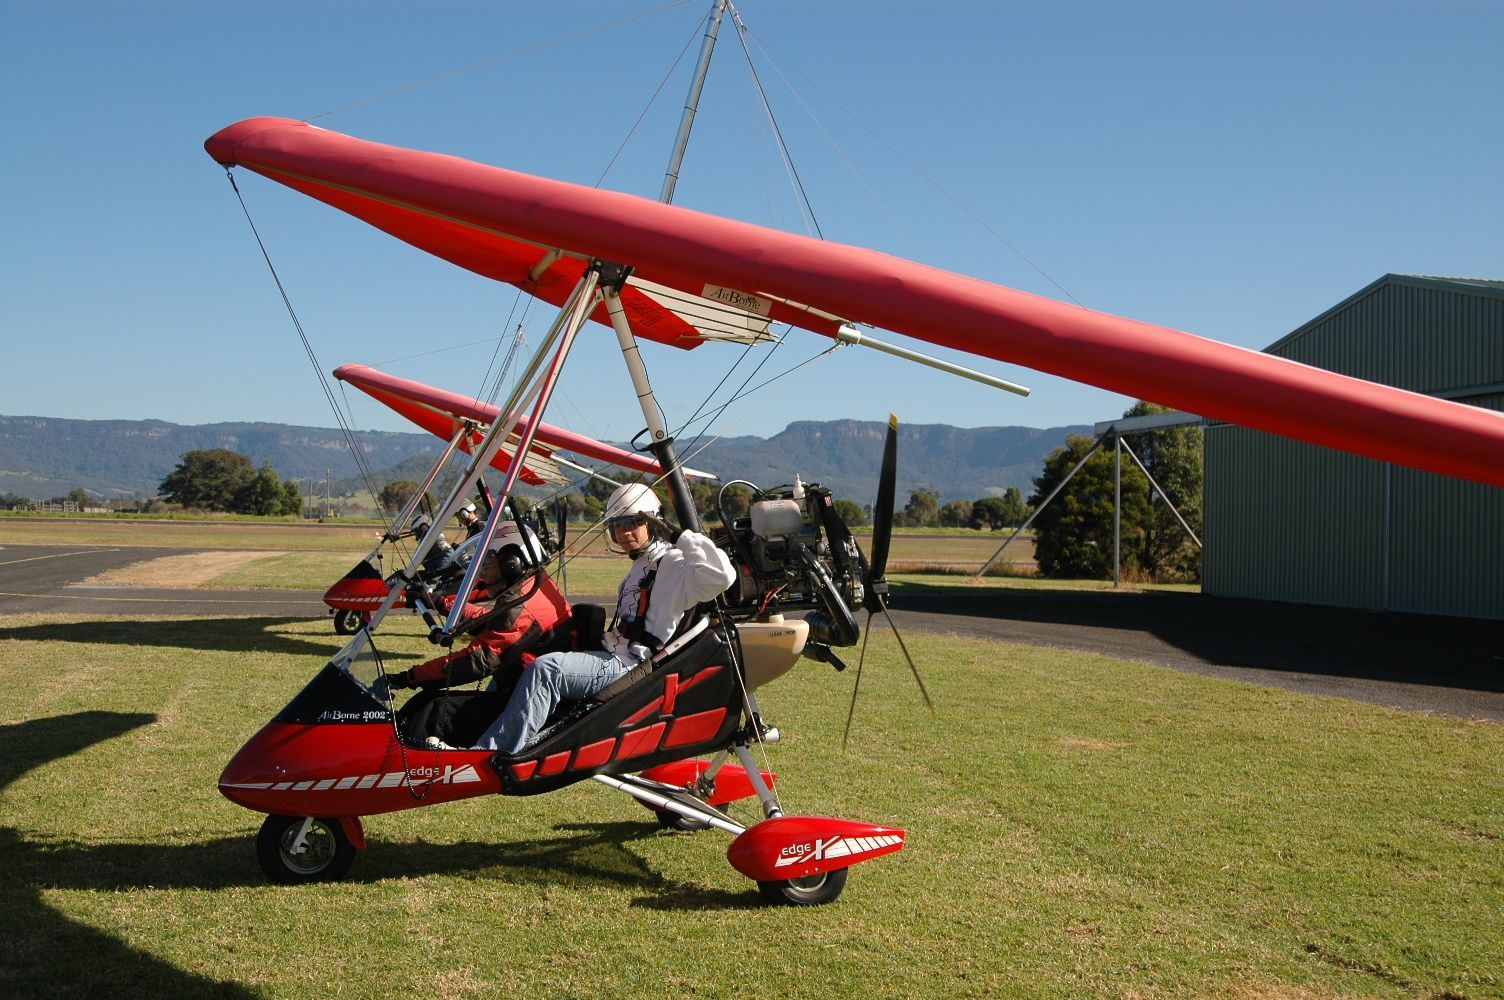 Trike (powered hang glider) in Australia | Aircraft that I